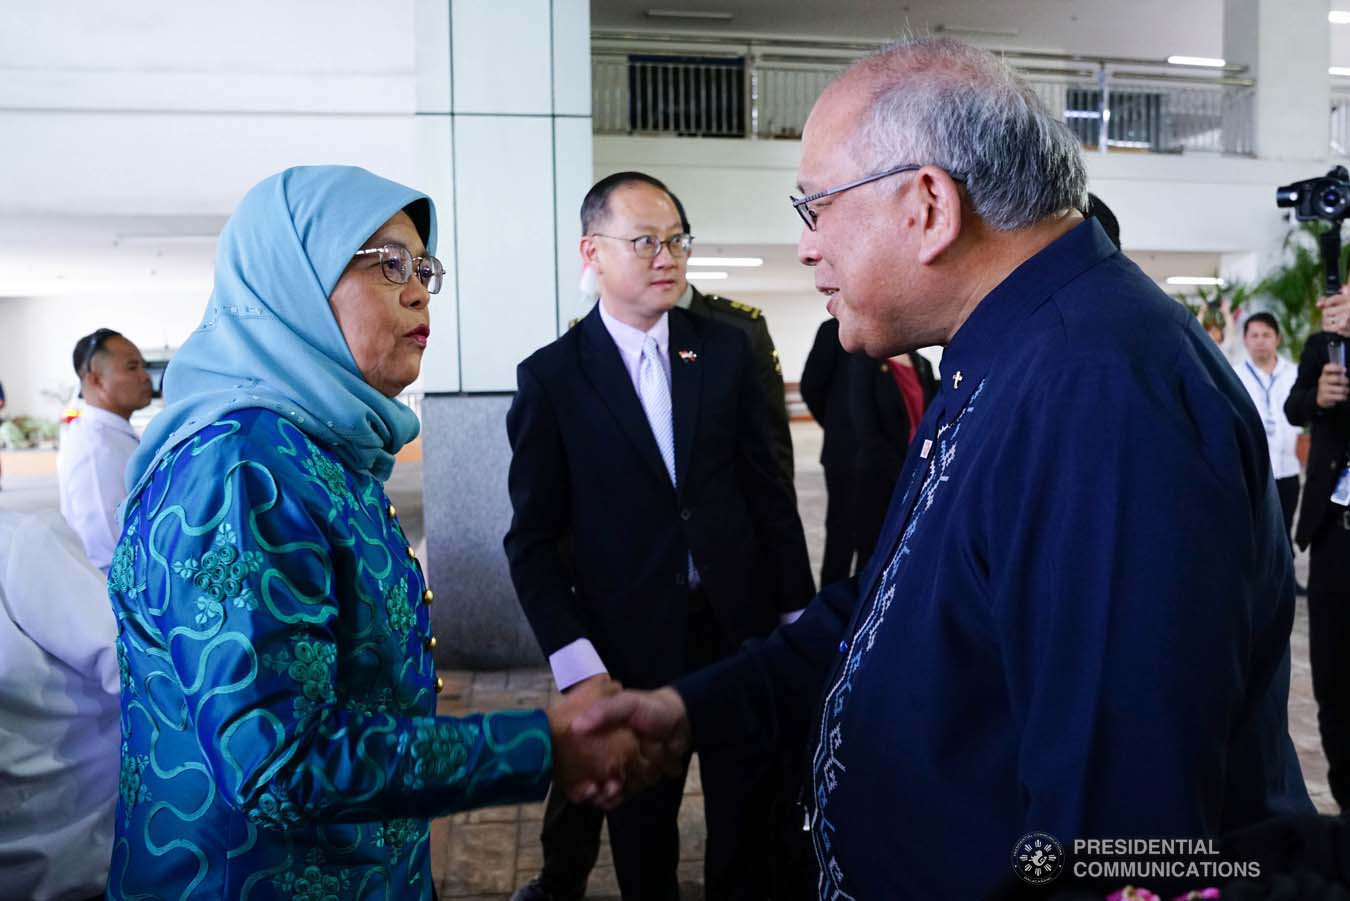 Republic of Singapore President Halimah Yacob receives a warm welcome from Ateneo de Davao University (ADDU) President Joel Tabora upon her arrival at the ADDU in Davao City on September 11, 2019. JOEY DALUMPINES/PRESIDENTIAL PHOTO